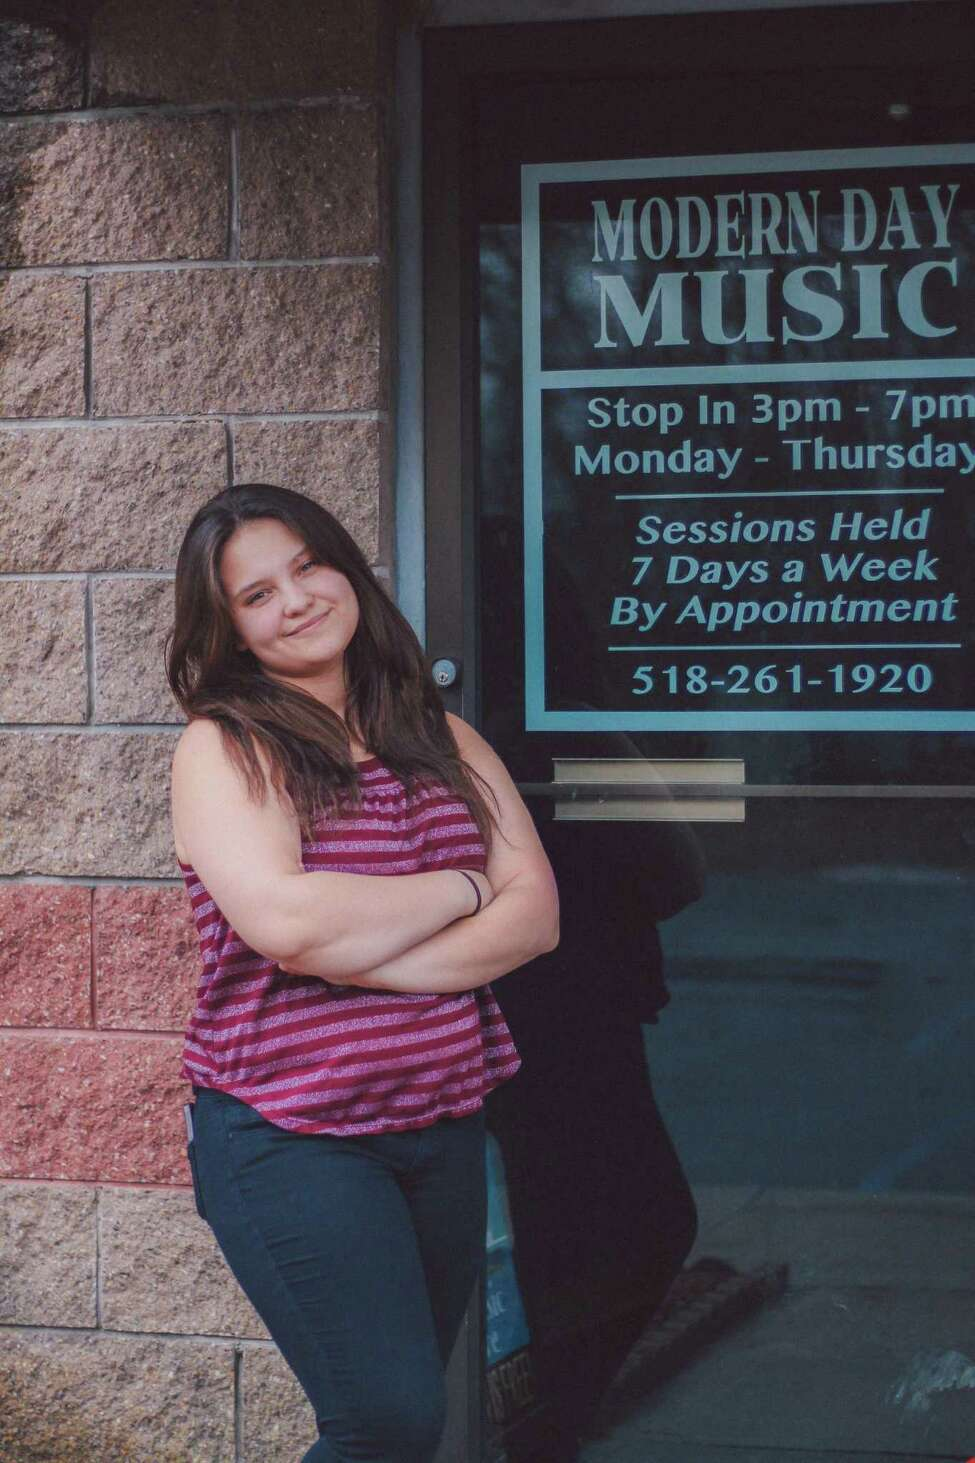 American Idol finalist Madison VanDenburg stopped by Modern Day Music School, where she has trained since 2015, on a recent visit home while competing on the ABC talent show in an undated photo in Clifton Park, N.Y.